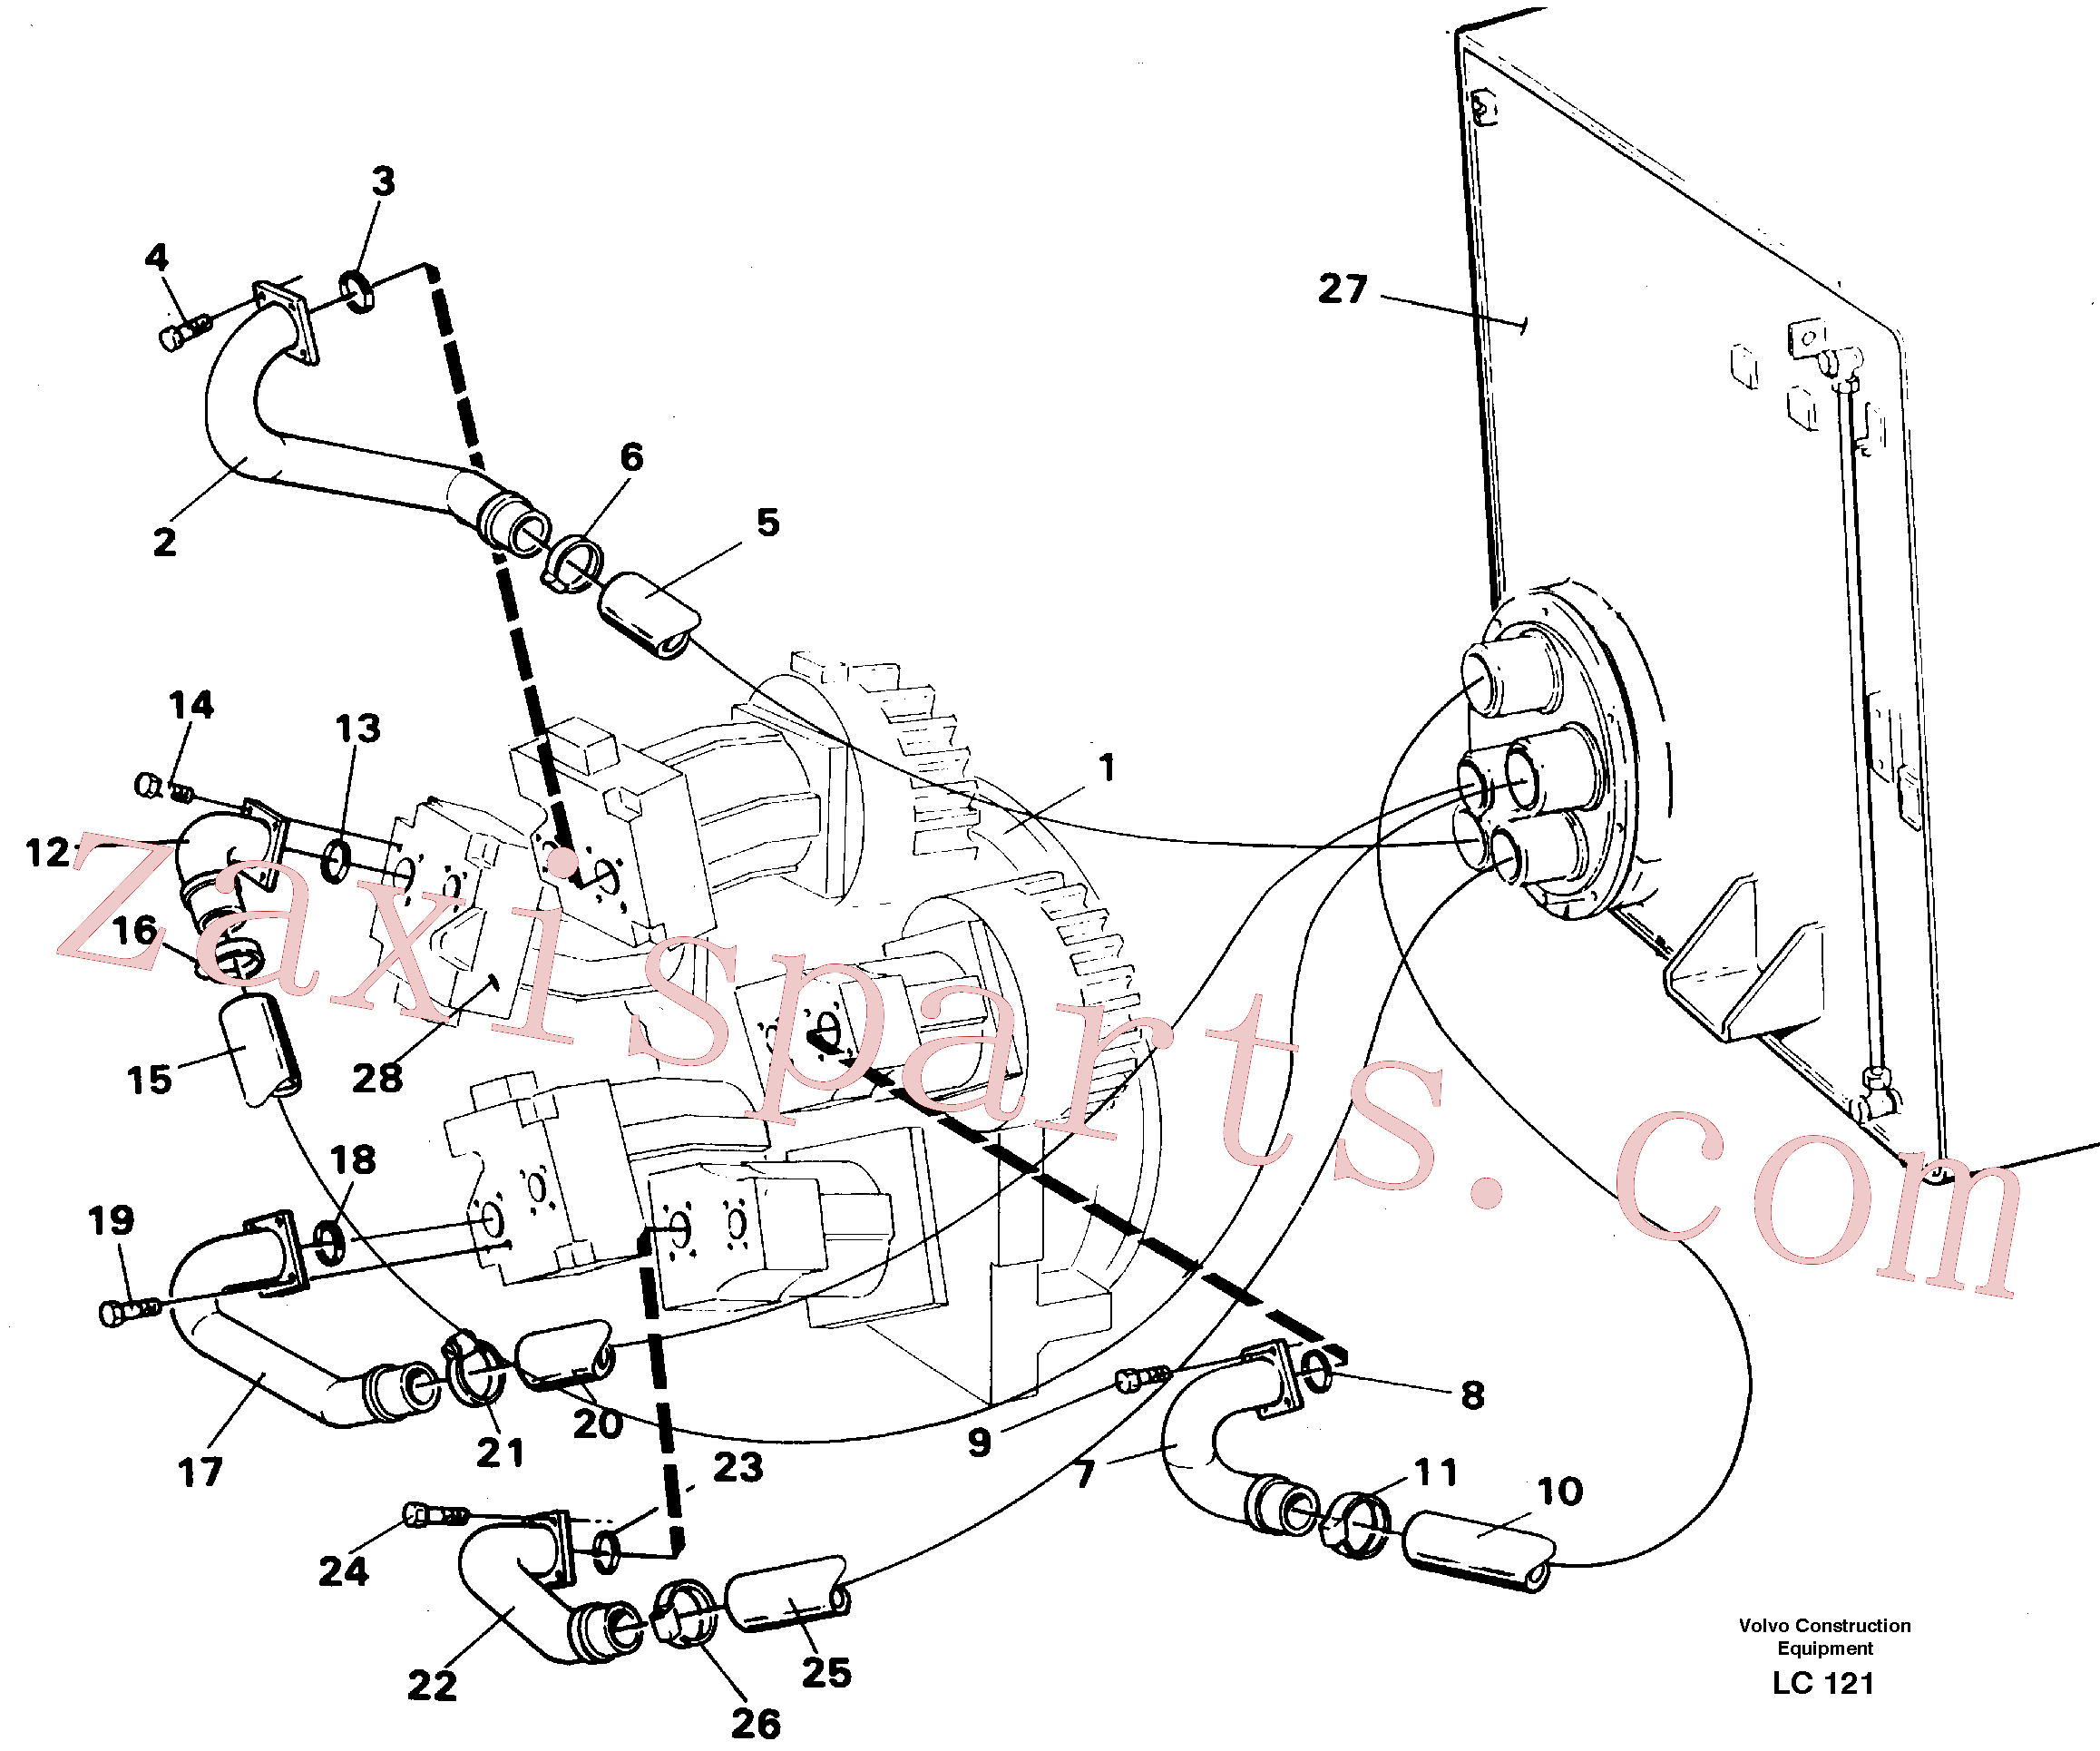 VOE14265283 for Volvo Hydraulic system suction lines(LC121 assembly)